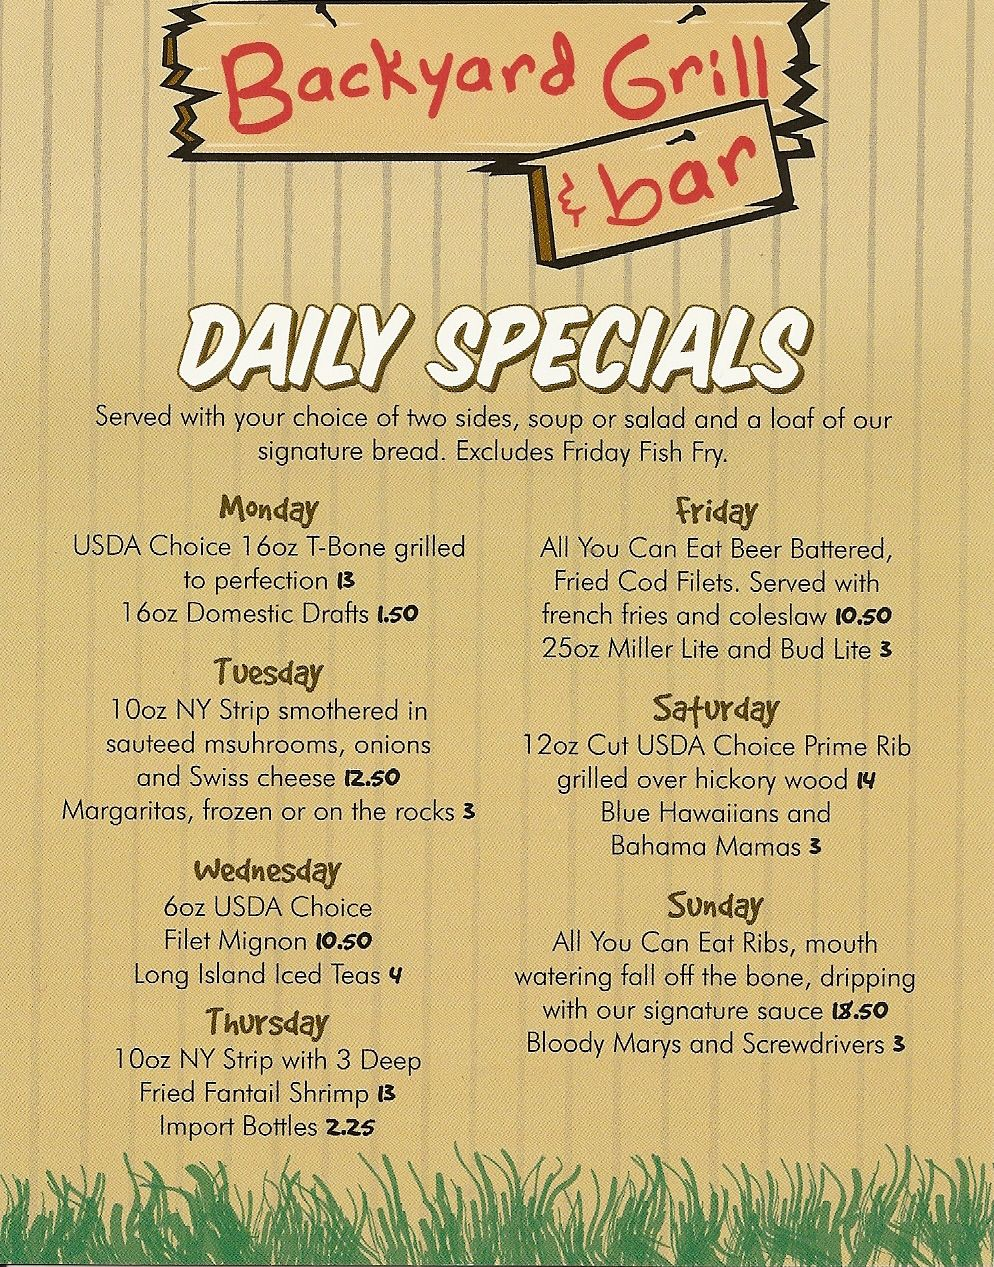 daily specials menu | backyard grill and bar daily specials menu